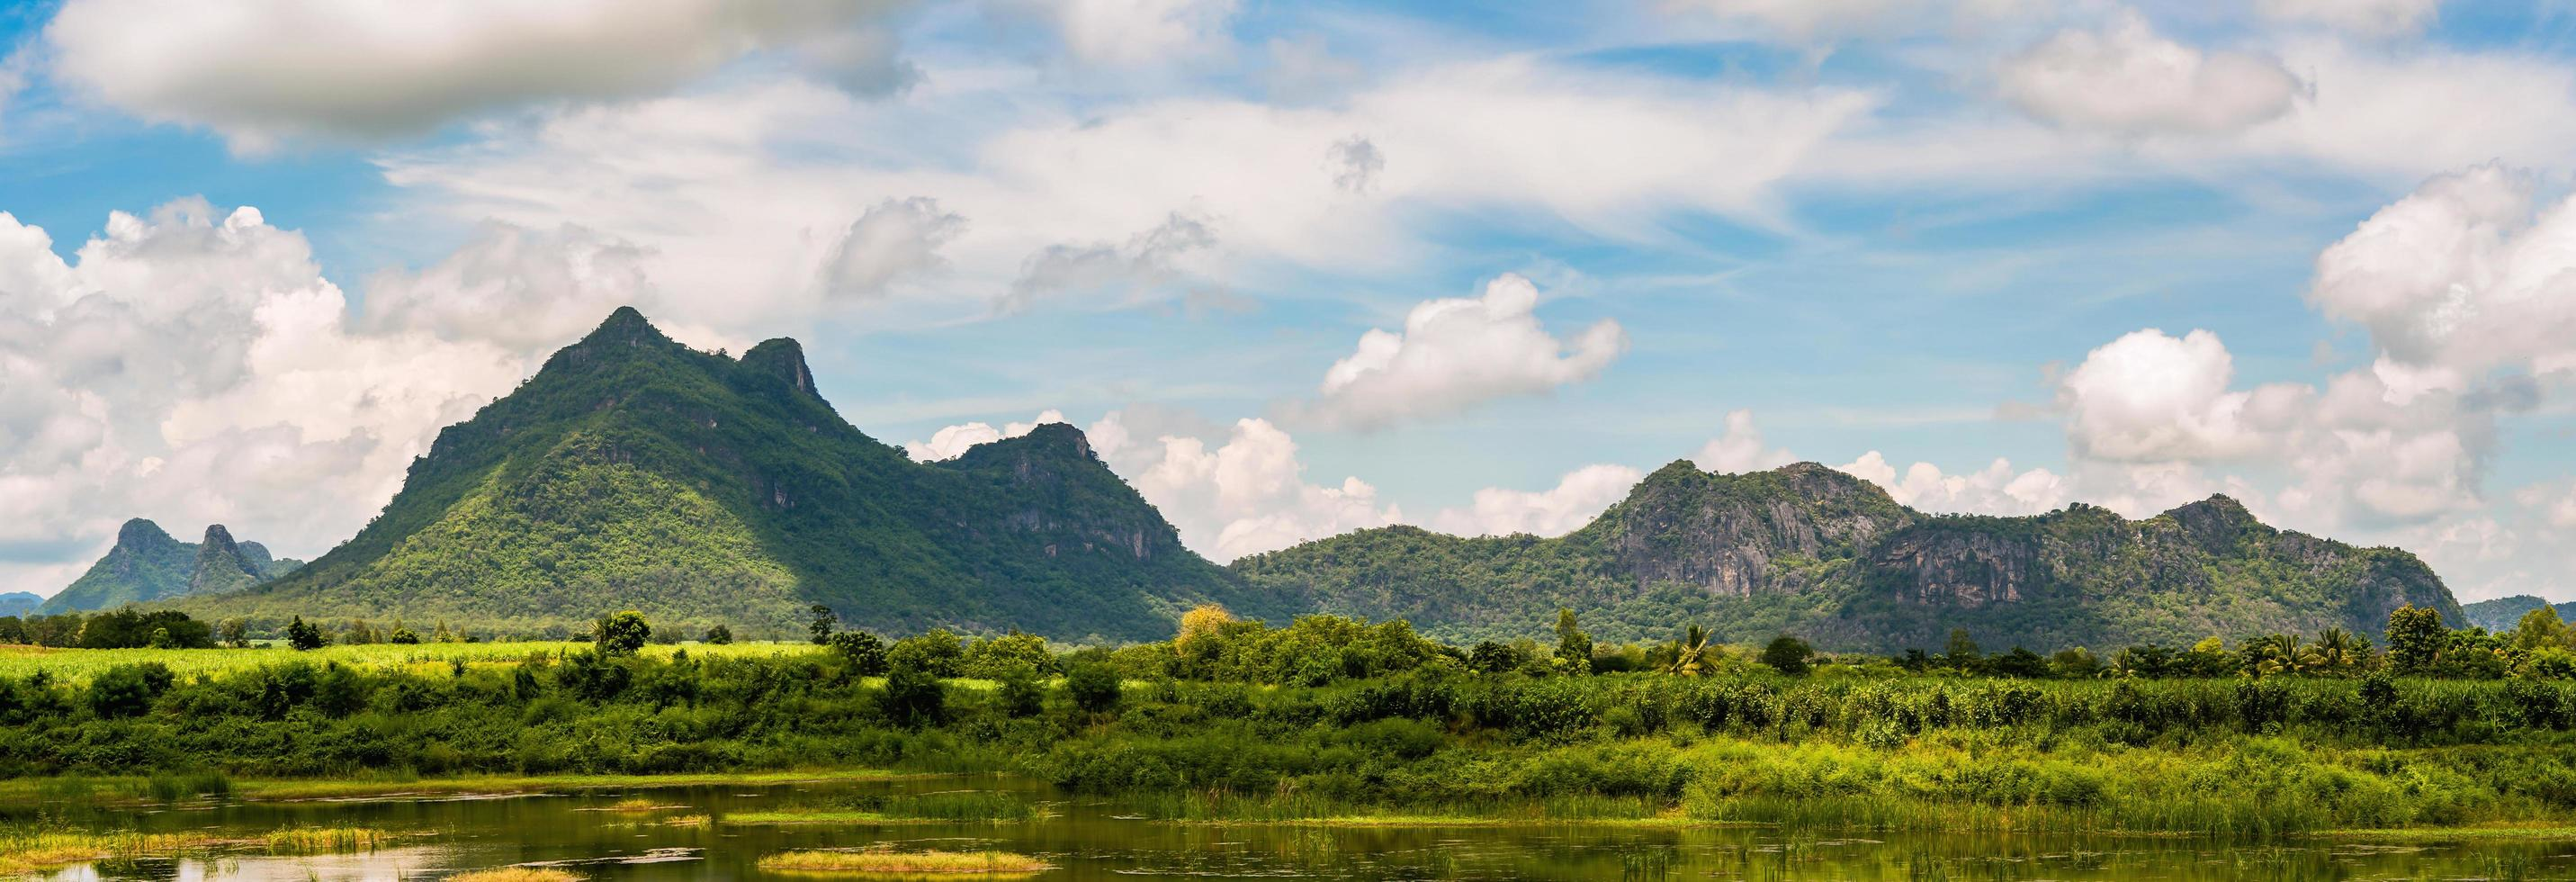 Panorama of mountain landscape in Thailand photo